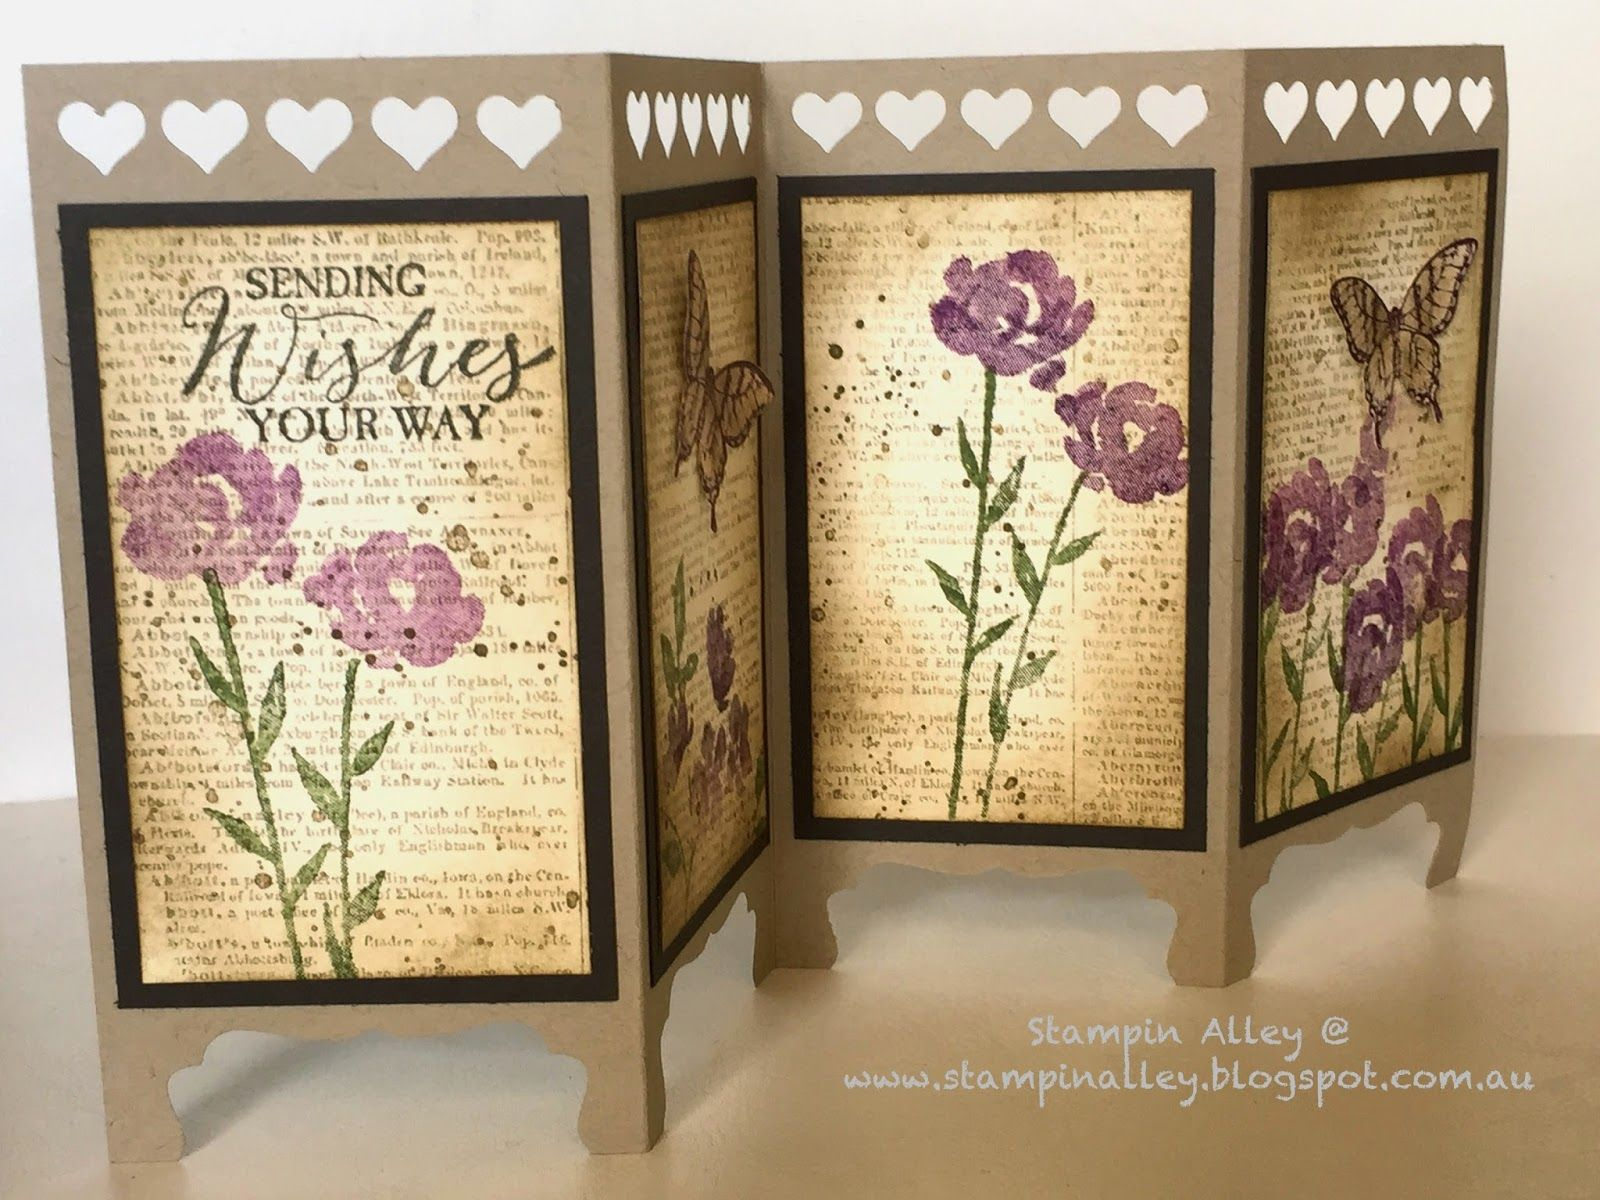 A matching vintage screen divider card cardaholic pinterest